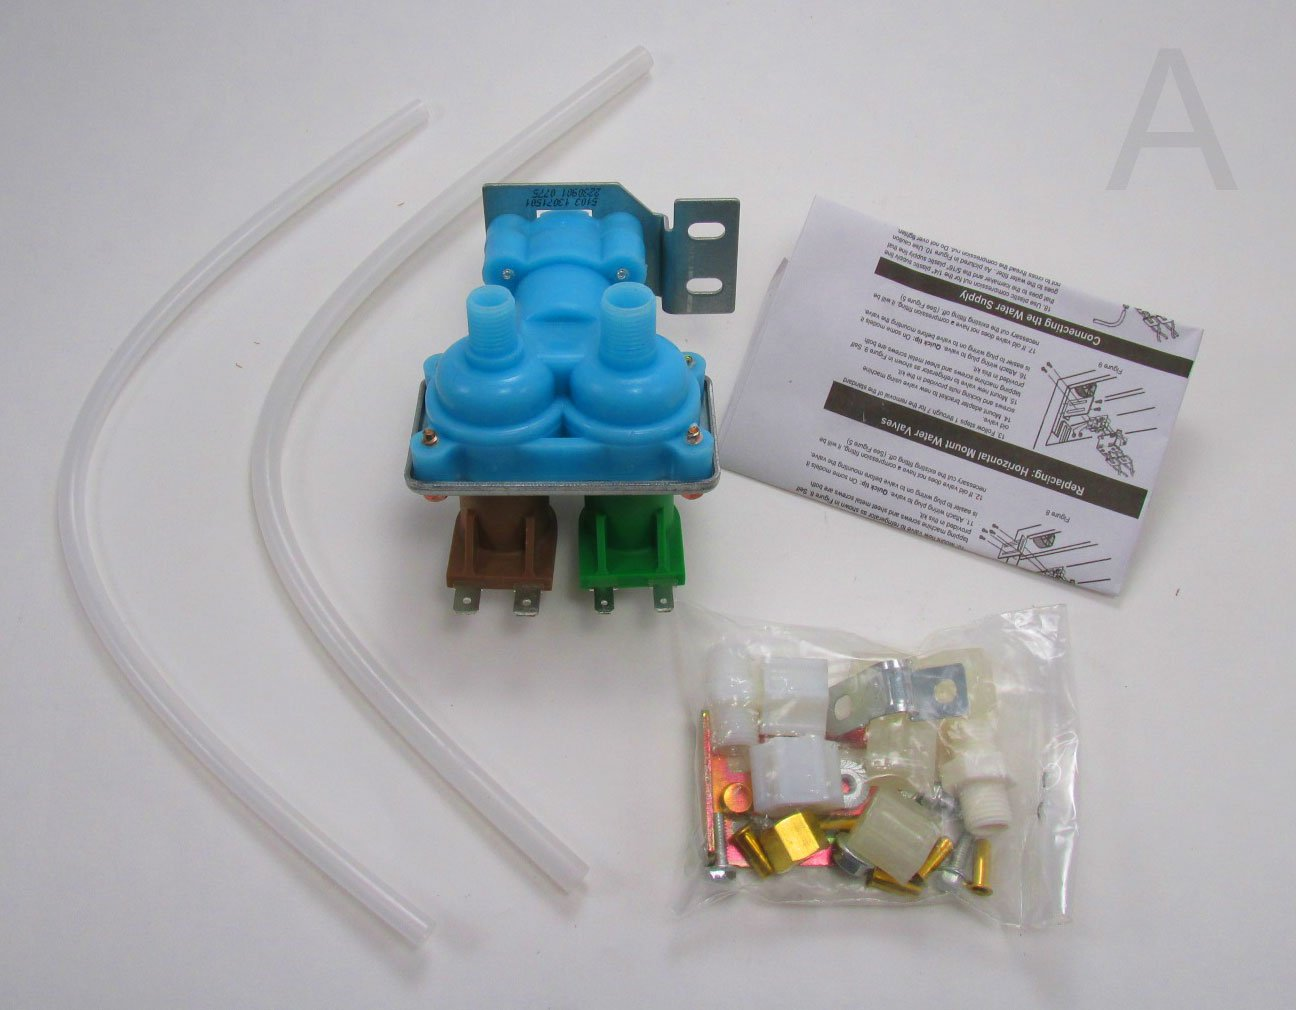 2002182 Quality Replacement Dual Water Valve Kit For Kenmore Wine Cooler Wiring Diagram Refrigerators With Dispenser And Ice Maker Fits Whirlpool Maytag